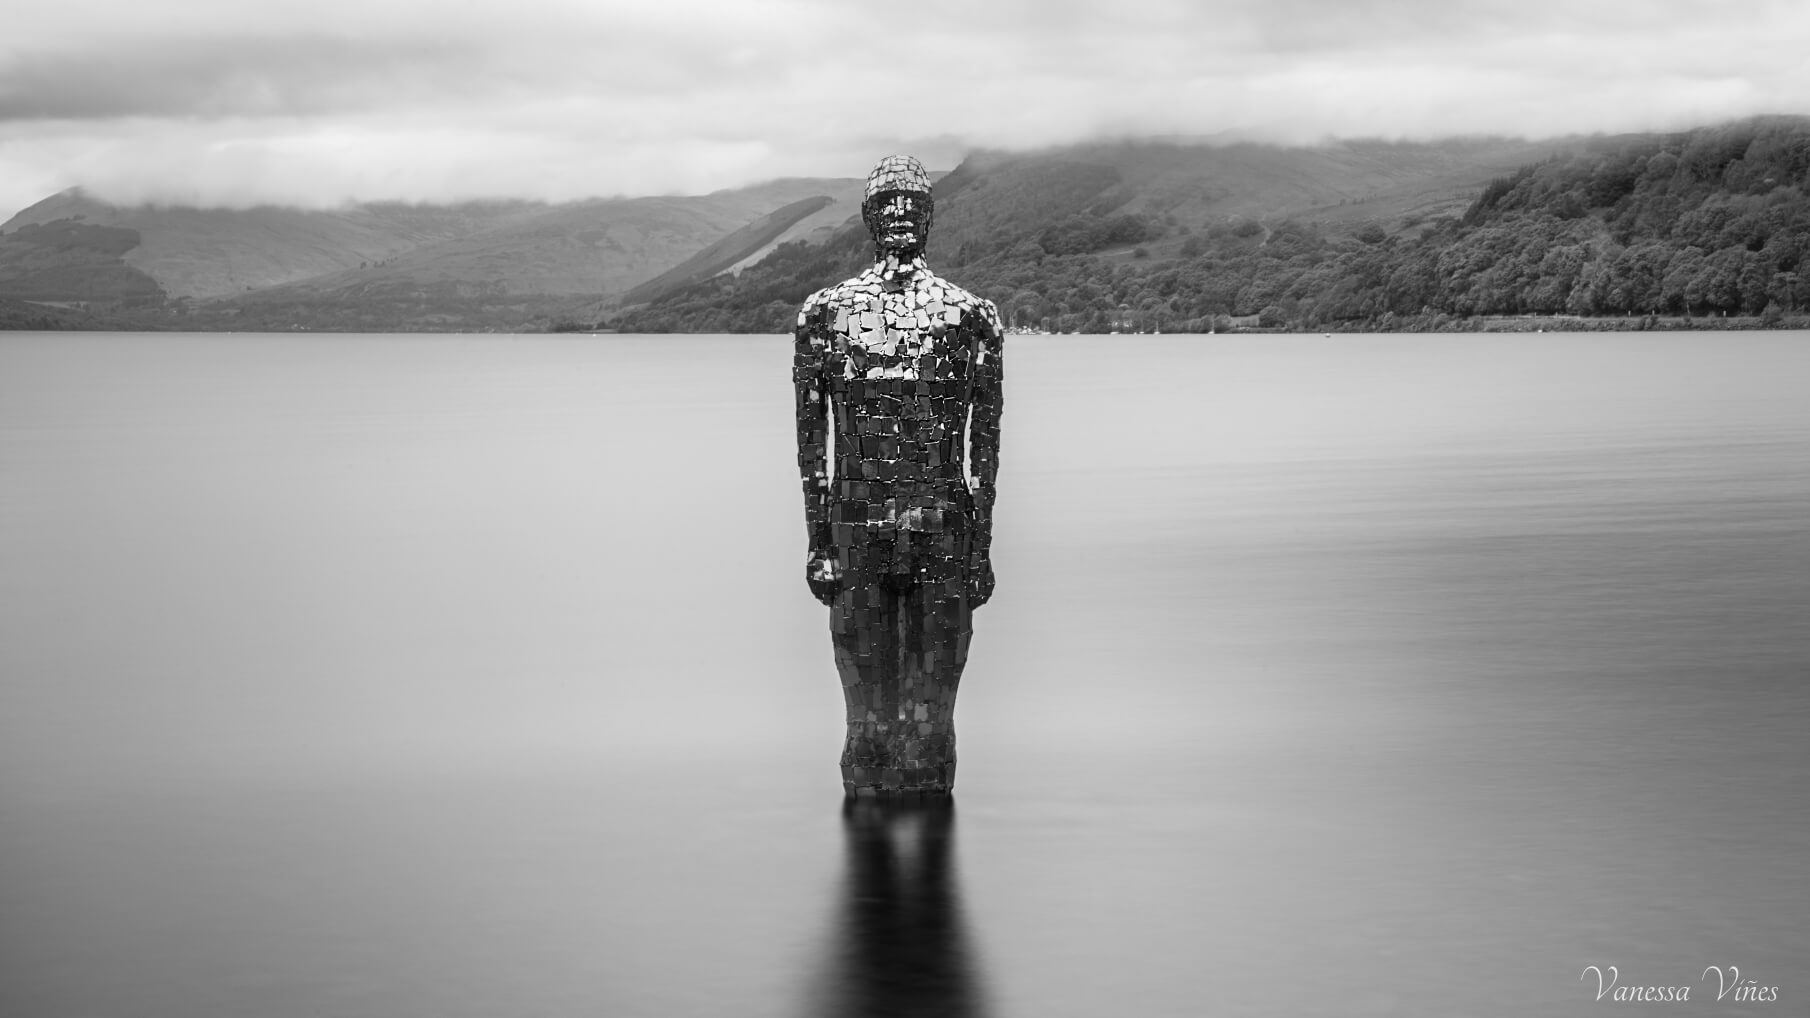 The man in the loch